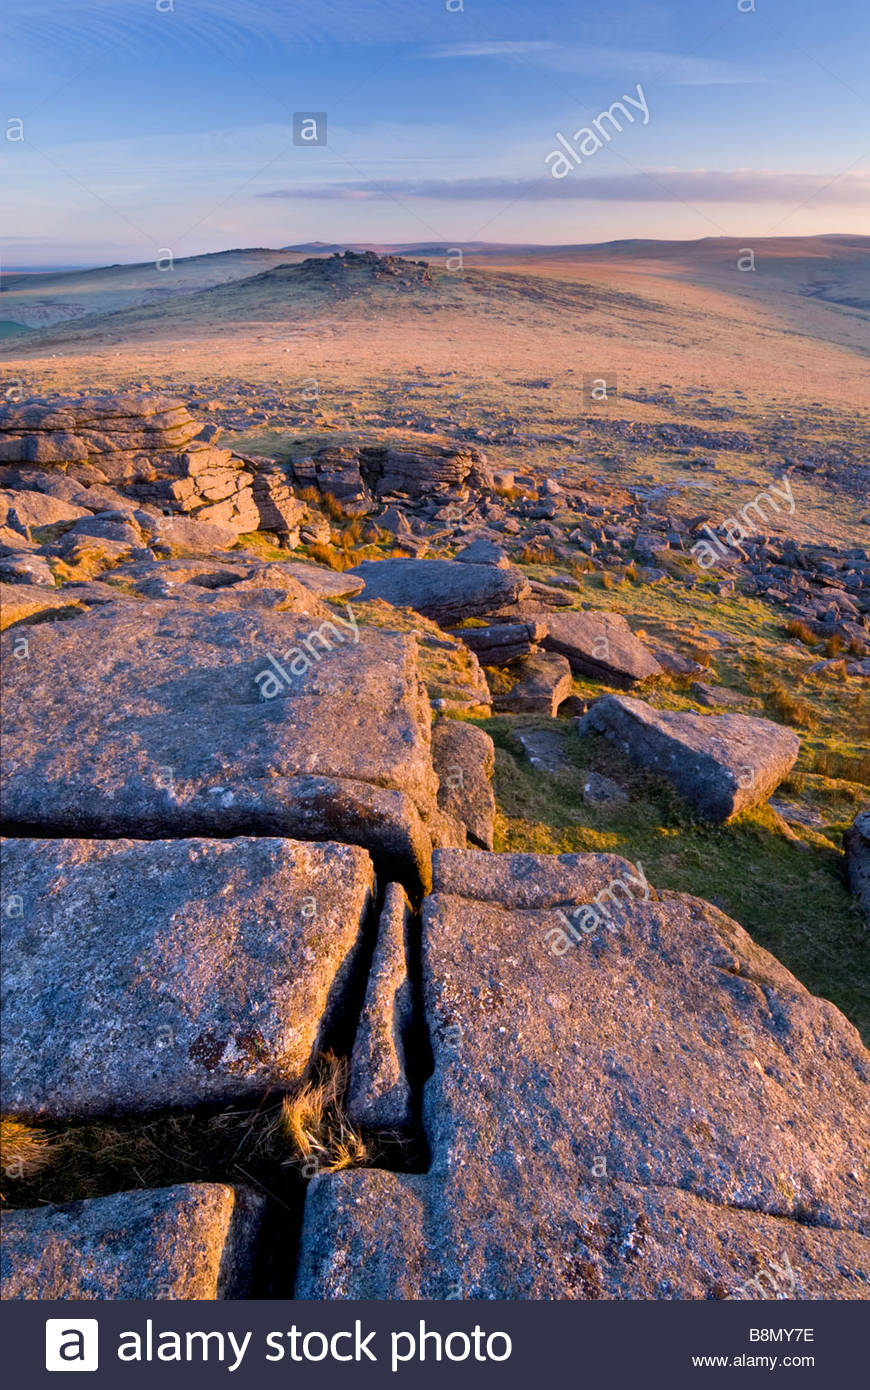 Roos Tor from Great Staple Tor, Dartmoor National Park, Devon, England, UK. Stock Photo